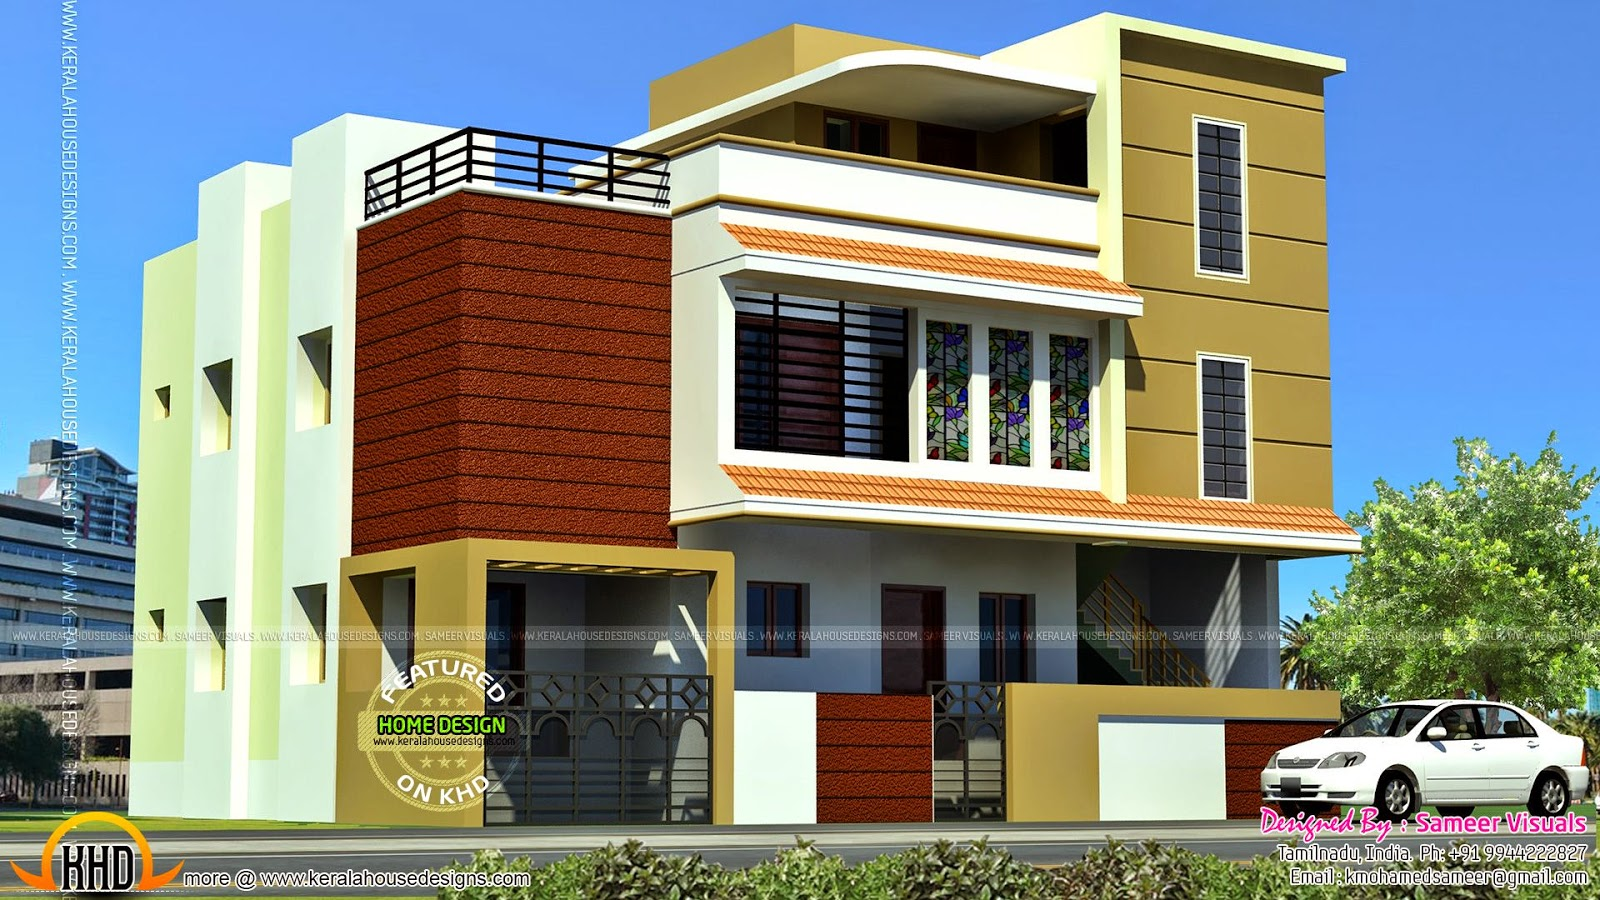 Tamilnadu model house kerala home design and floor plans for Home models in tamilnadu pictures